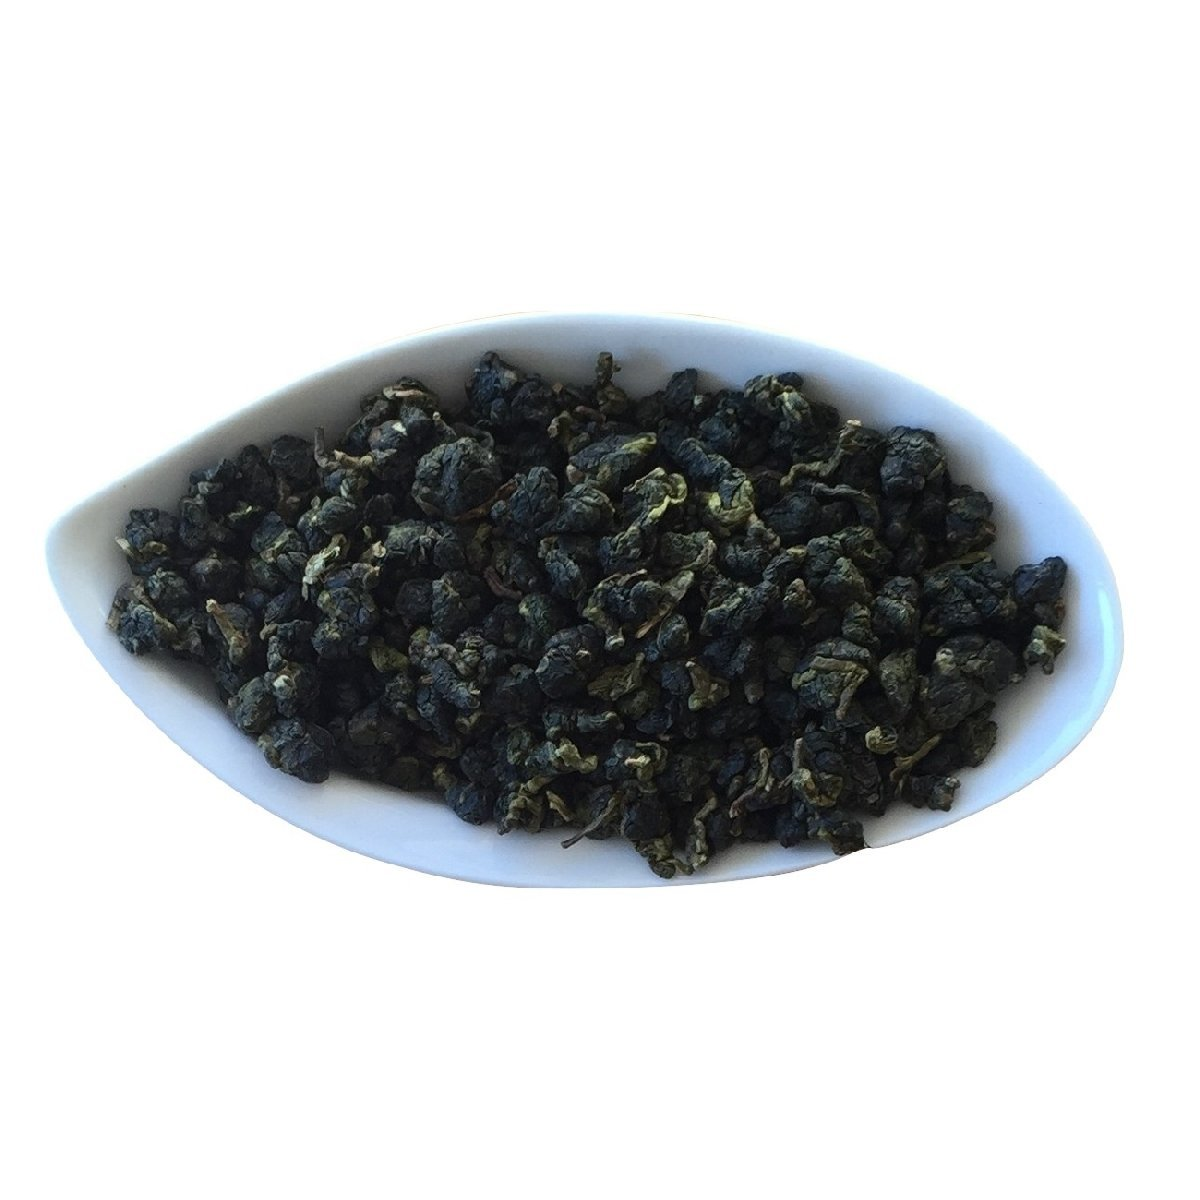 Zi Chun Teas - Premium Milk Oolong Tea, Loose Leaf Tea from Taiwan, Best Oolong Tea for Weight Loss Programs, Rich in Antioxidants and Polyphenols - Vacuum Sealed  - 3.5 Ounces by Zi Chun Teas